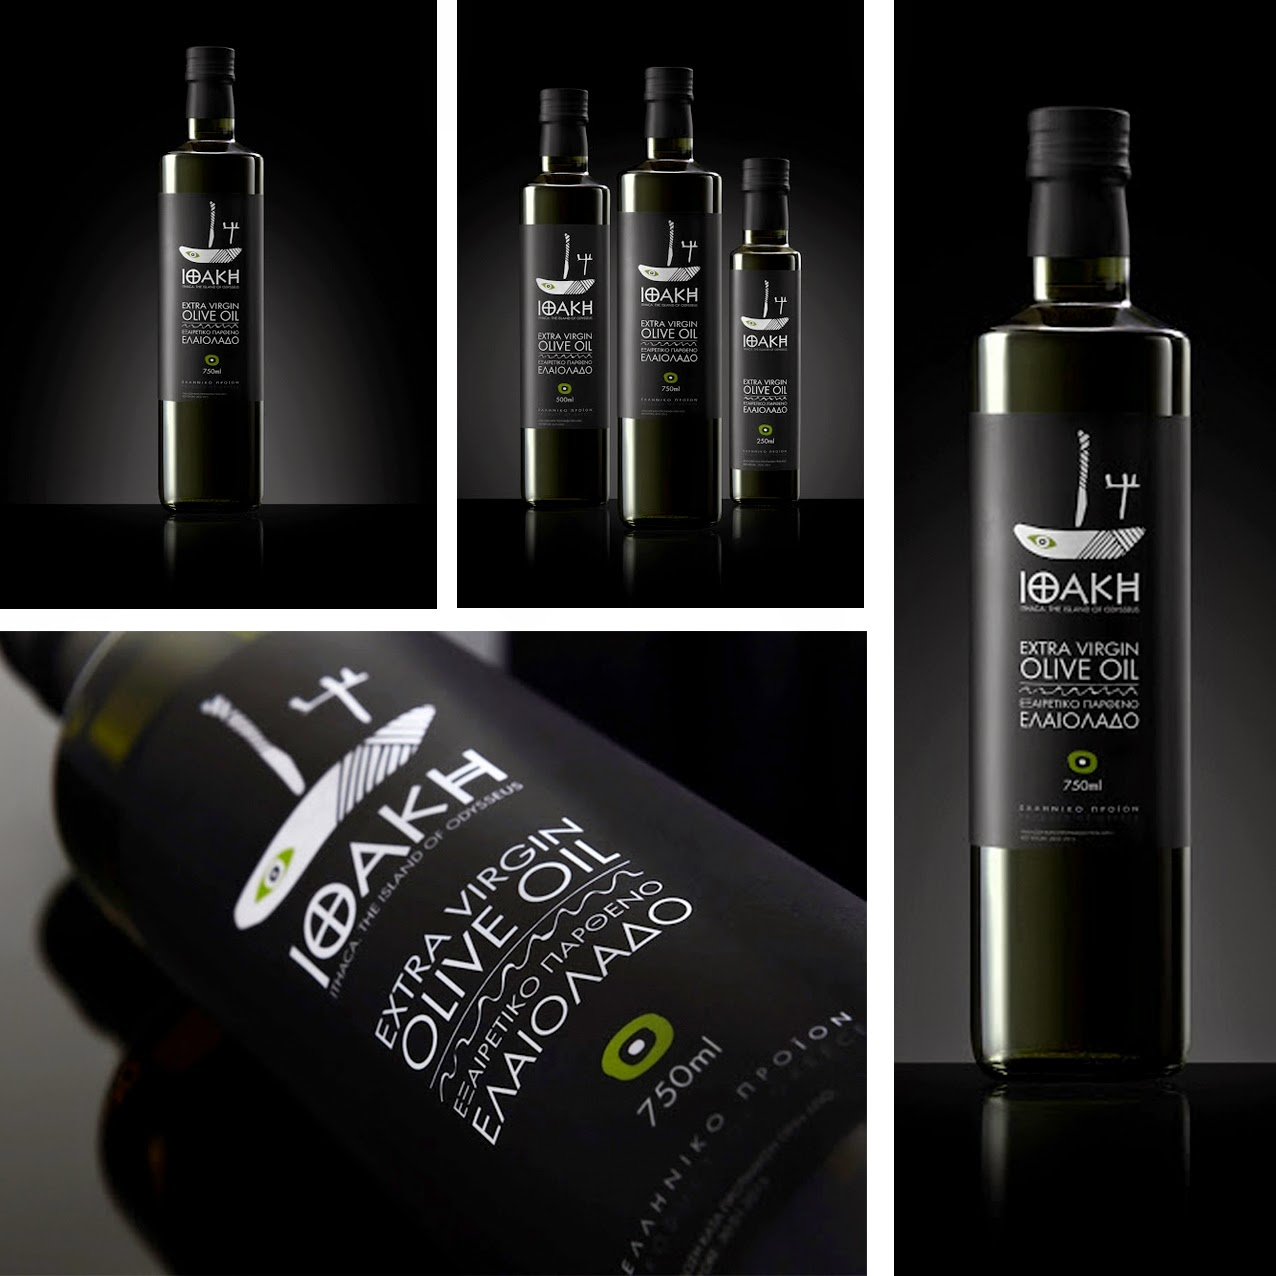 olive oil packaging - The Round Button blog